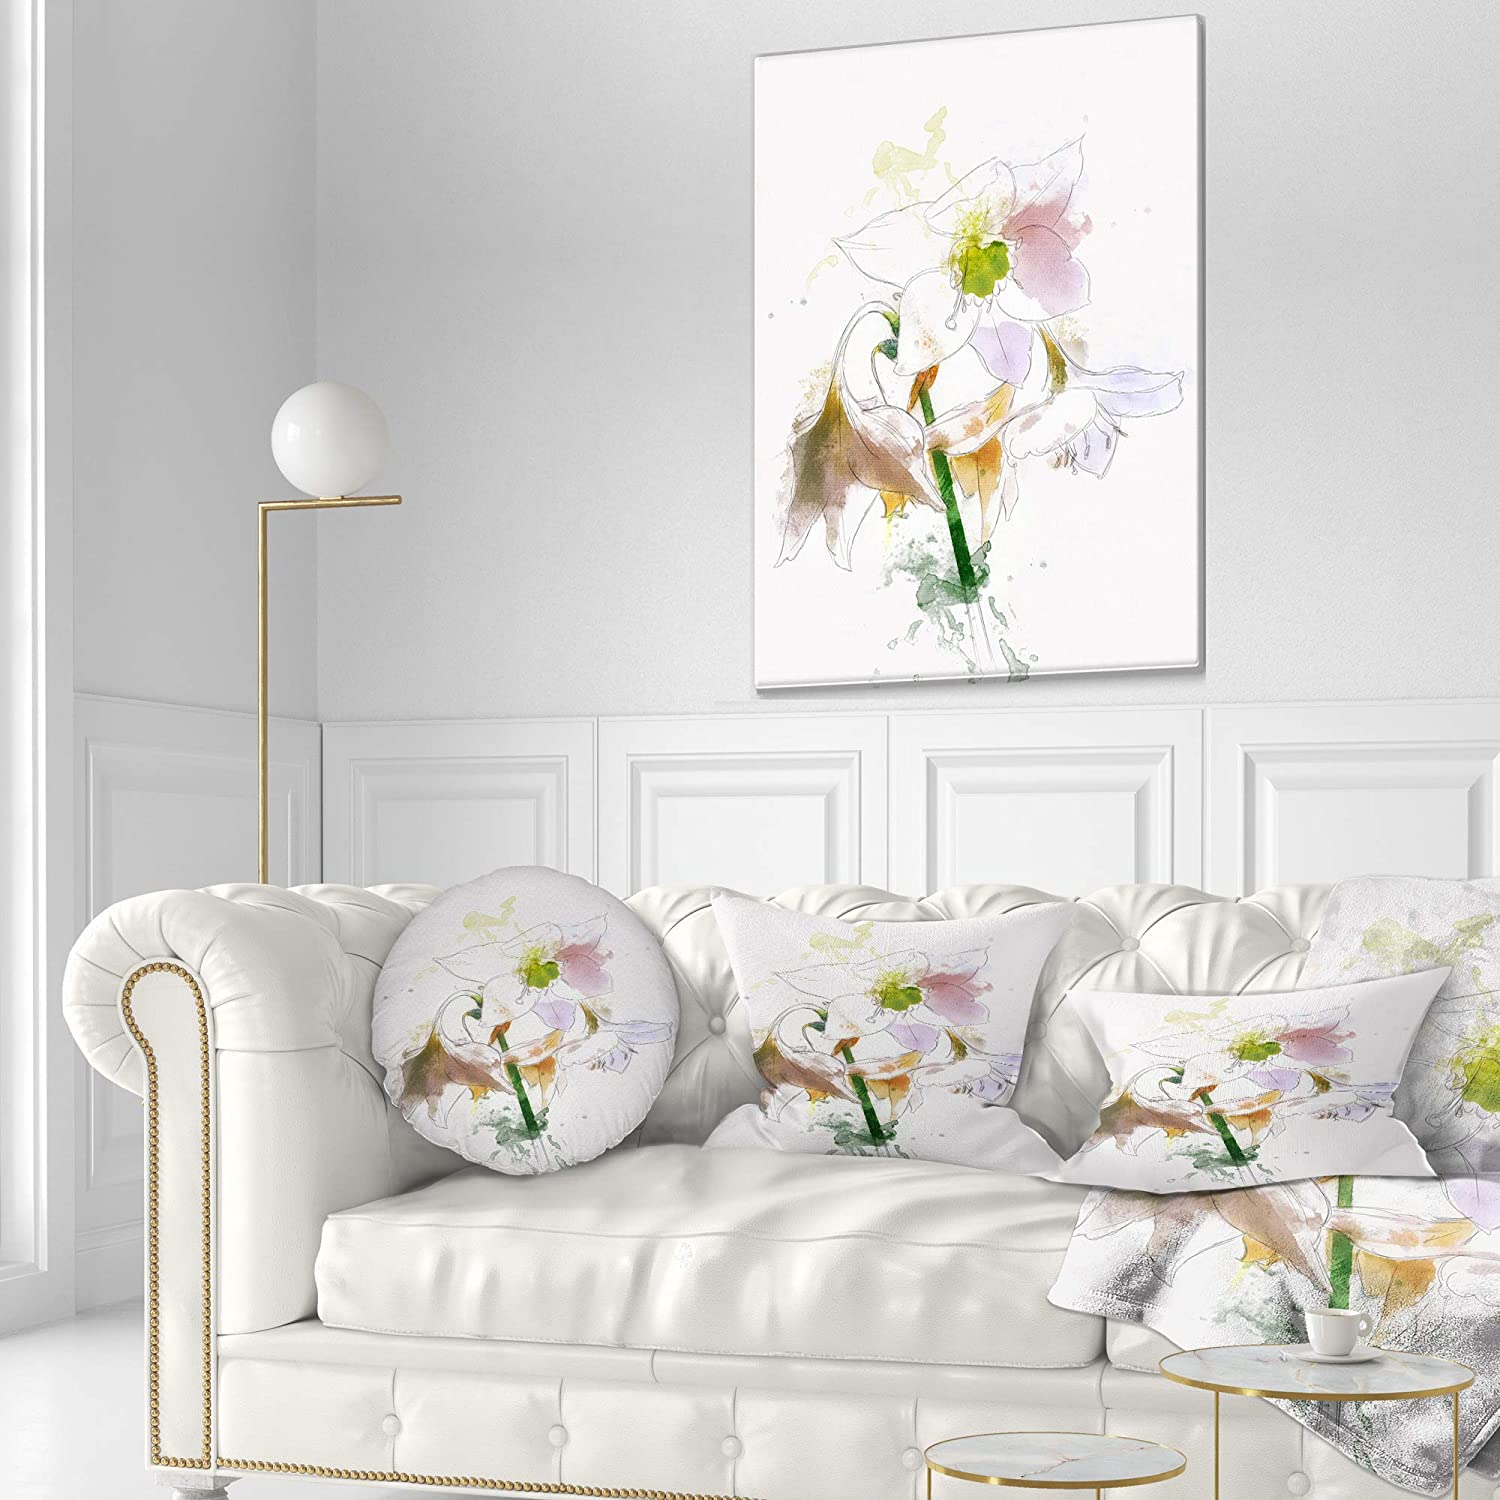 in x 20 in Designart CU13706-12-20 Large Petal Watercolor Flower Sketch Floral Lumbar Cushion Cover for Living Room Sofa Throw Pillow 12 in